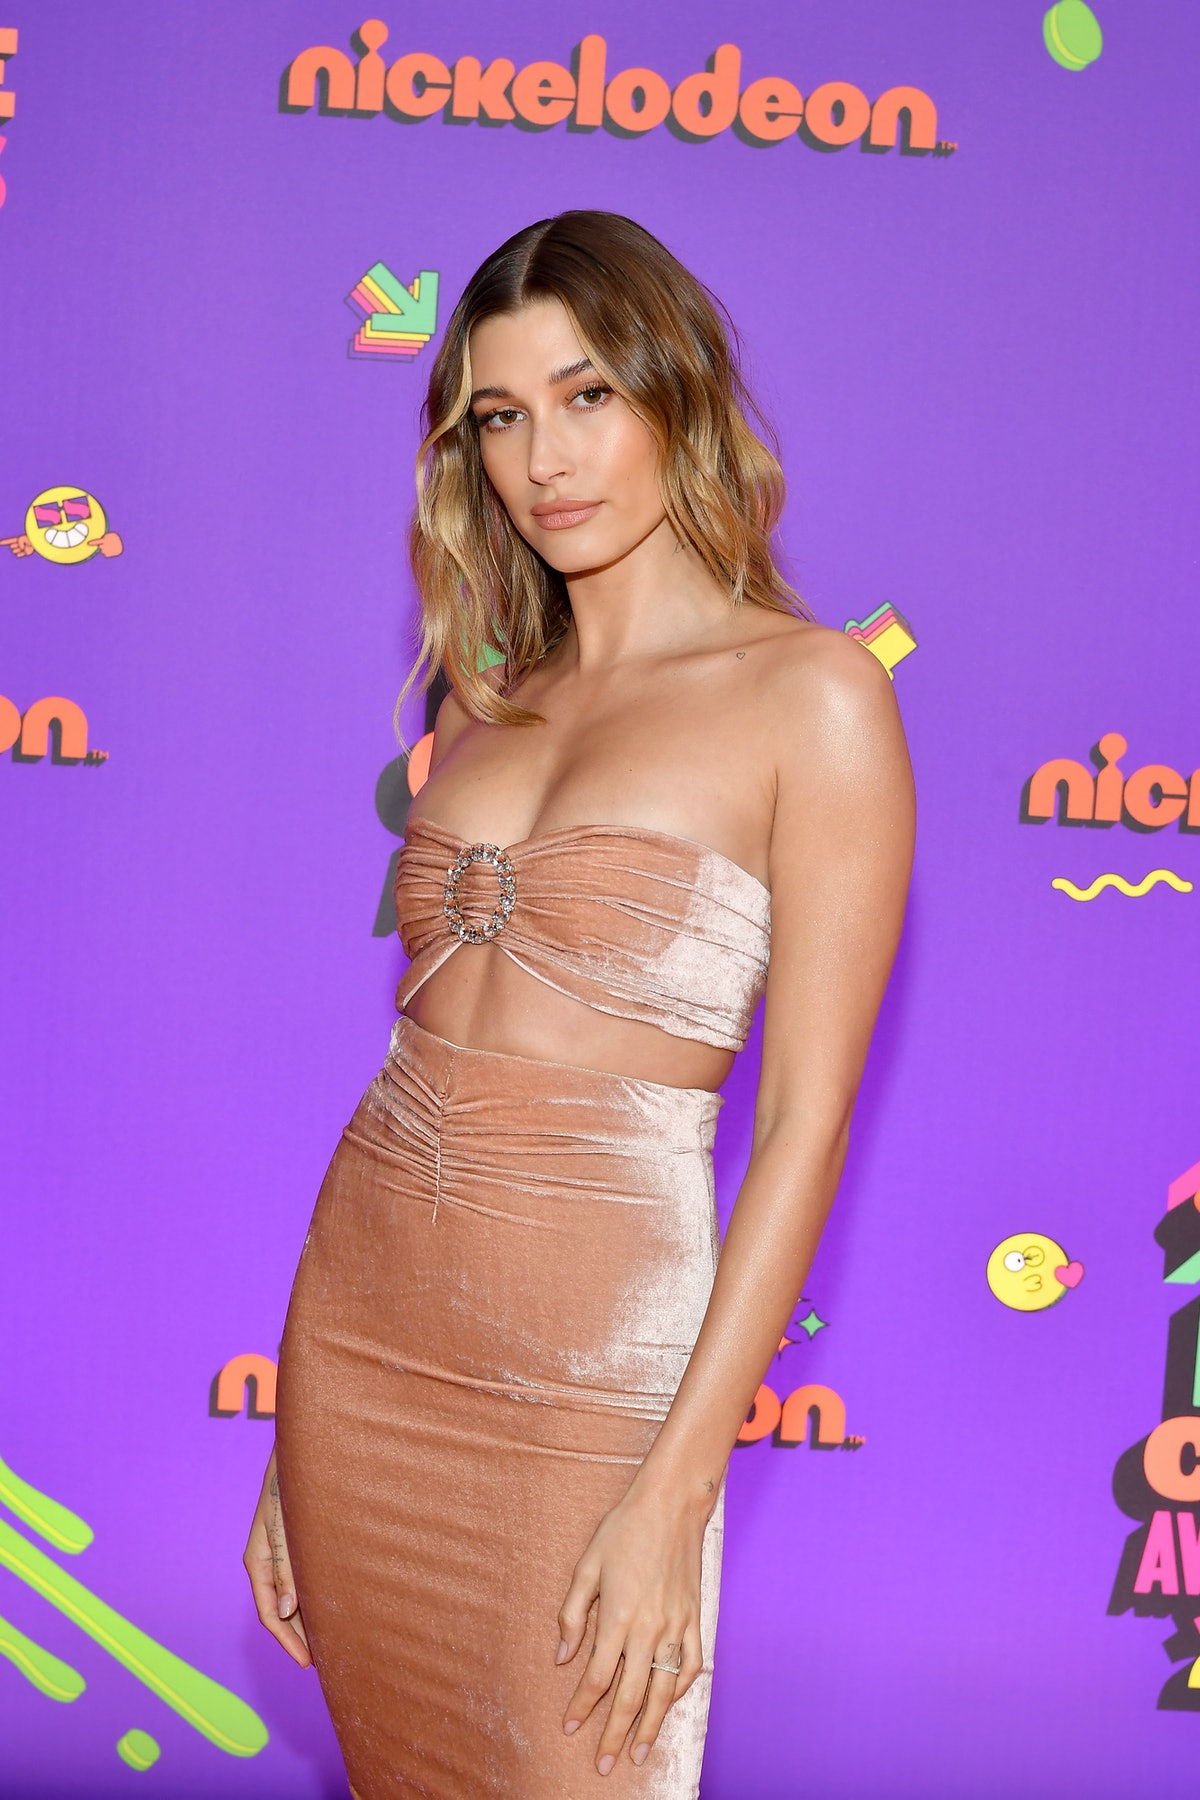 SANTA MONICA, CALIFORNIA - MARCH 13: In this image released on March 13, Hailey Bieber attends Nickelodeon's Kids' Choice Awards at Barker Hangar on March 13, 2021 in Santa Monica, California. (Photo by Amy Sussman/KCA2021/Getty Images for Nickelodeon)